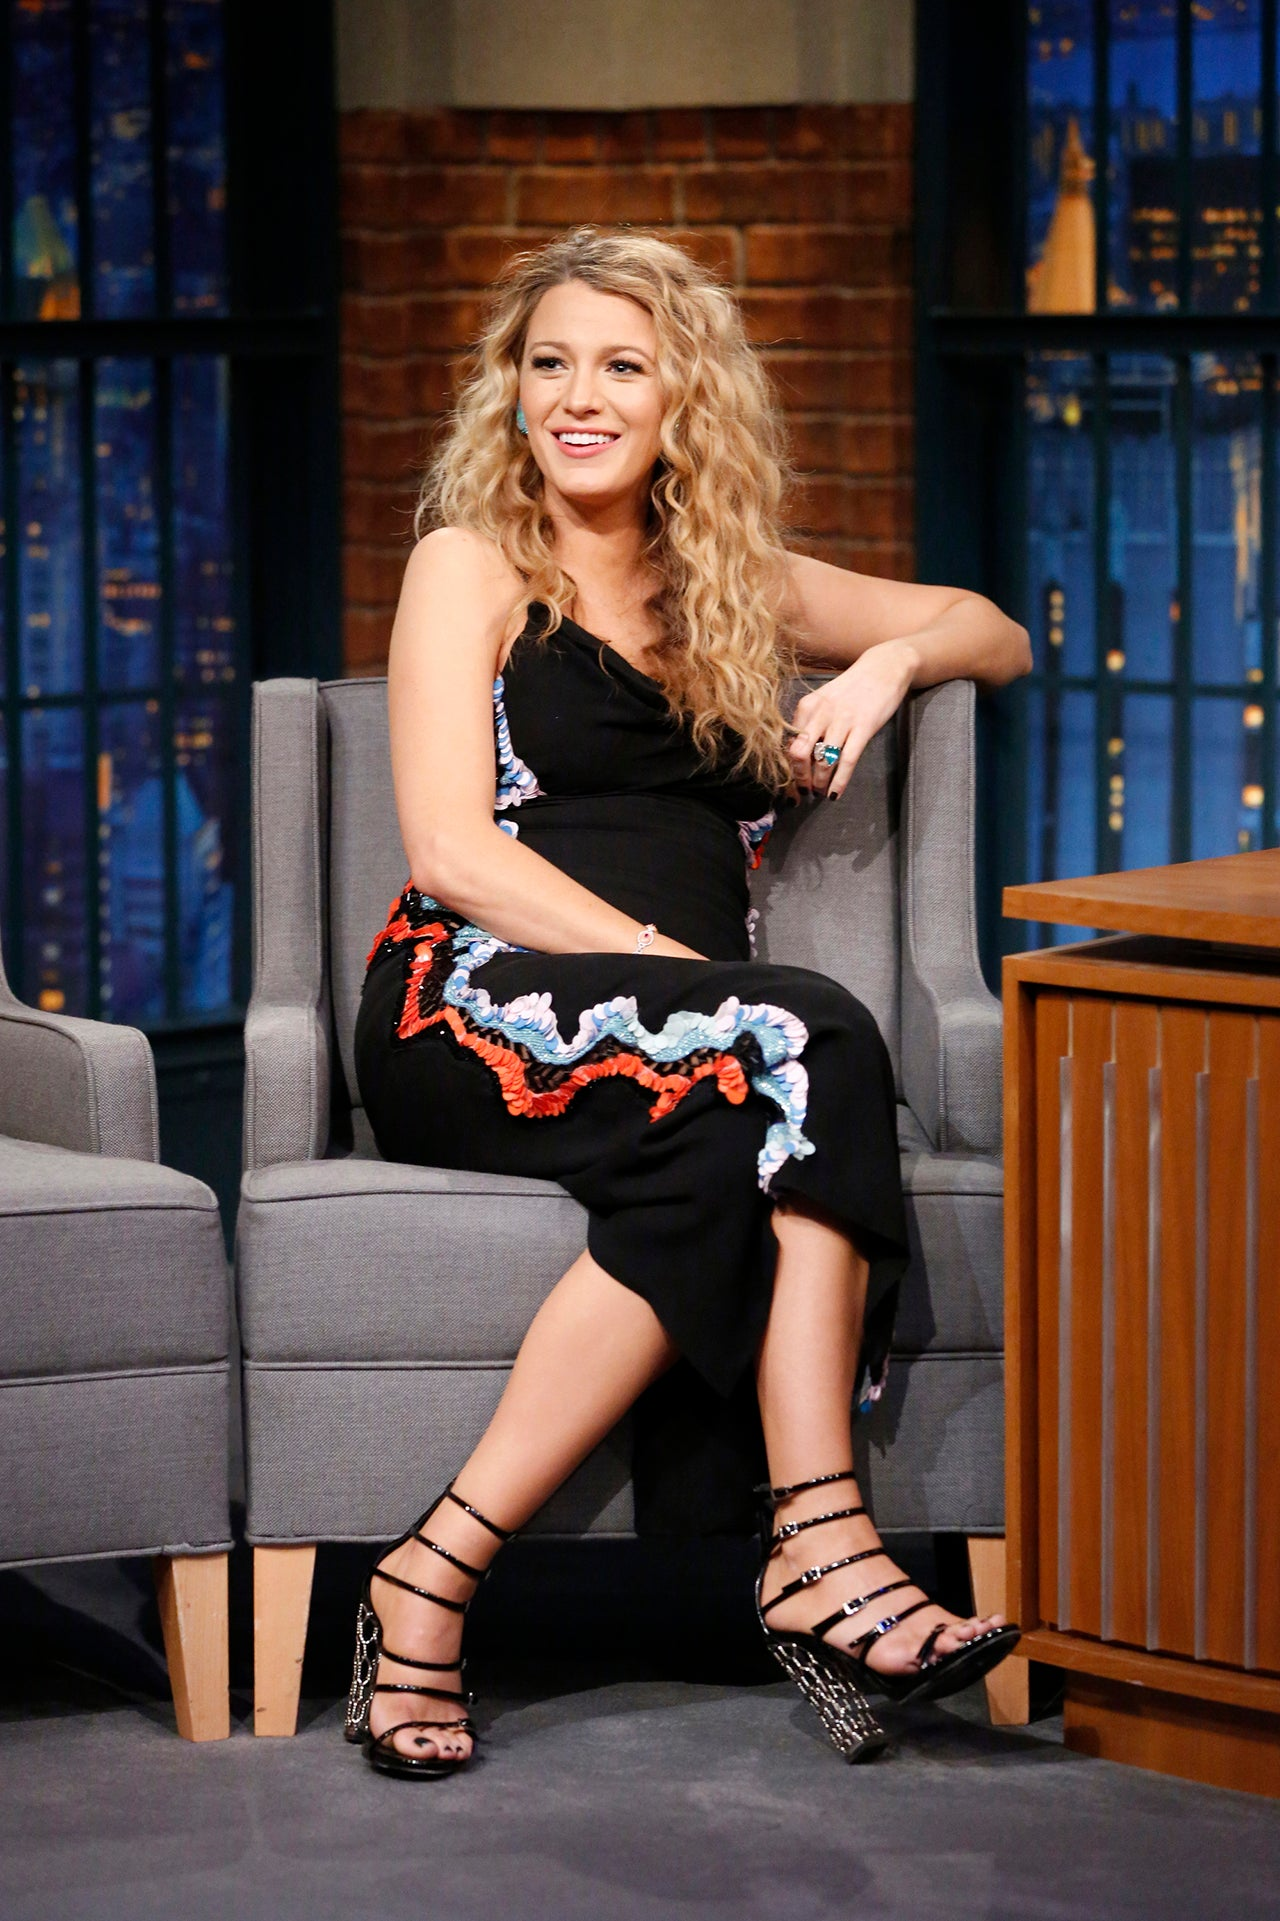 blake lively serves up crimped hair goals  jokes baby